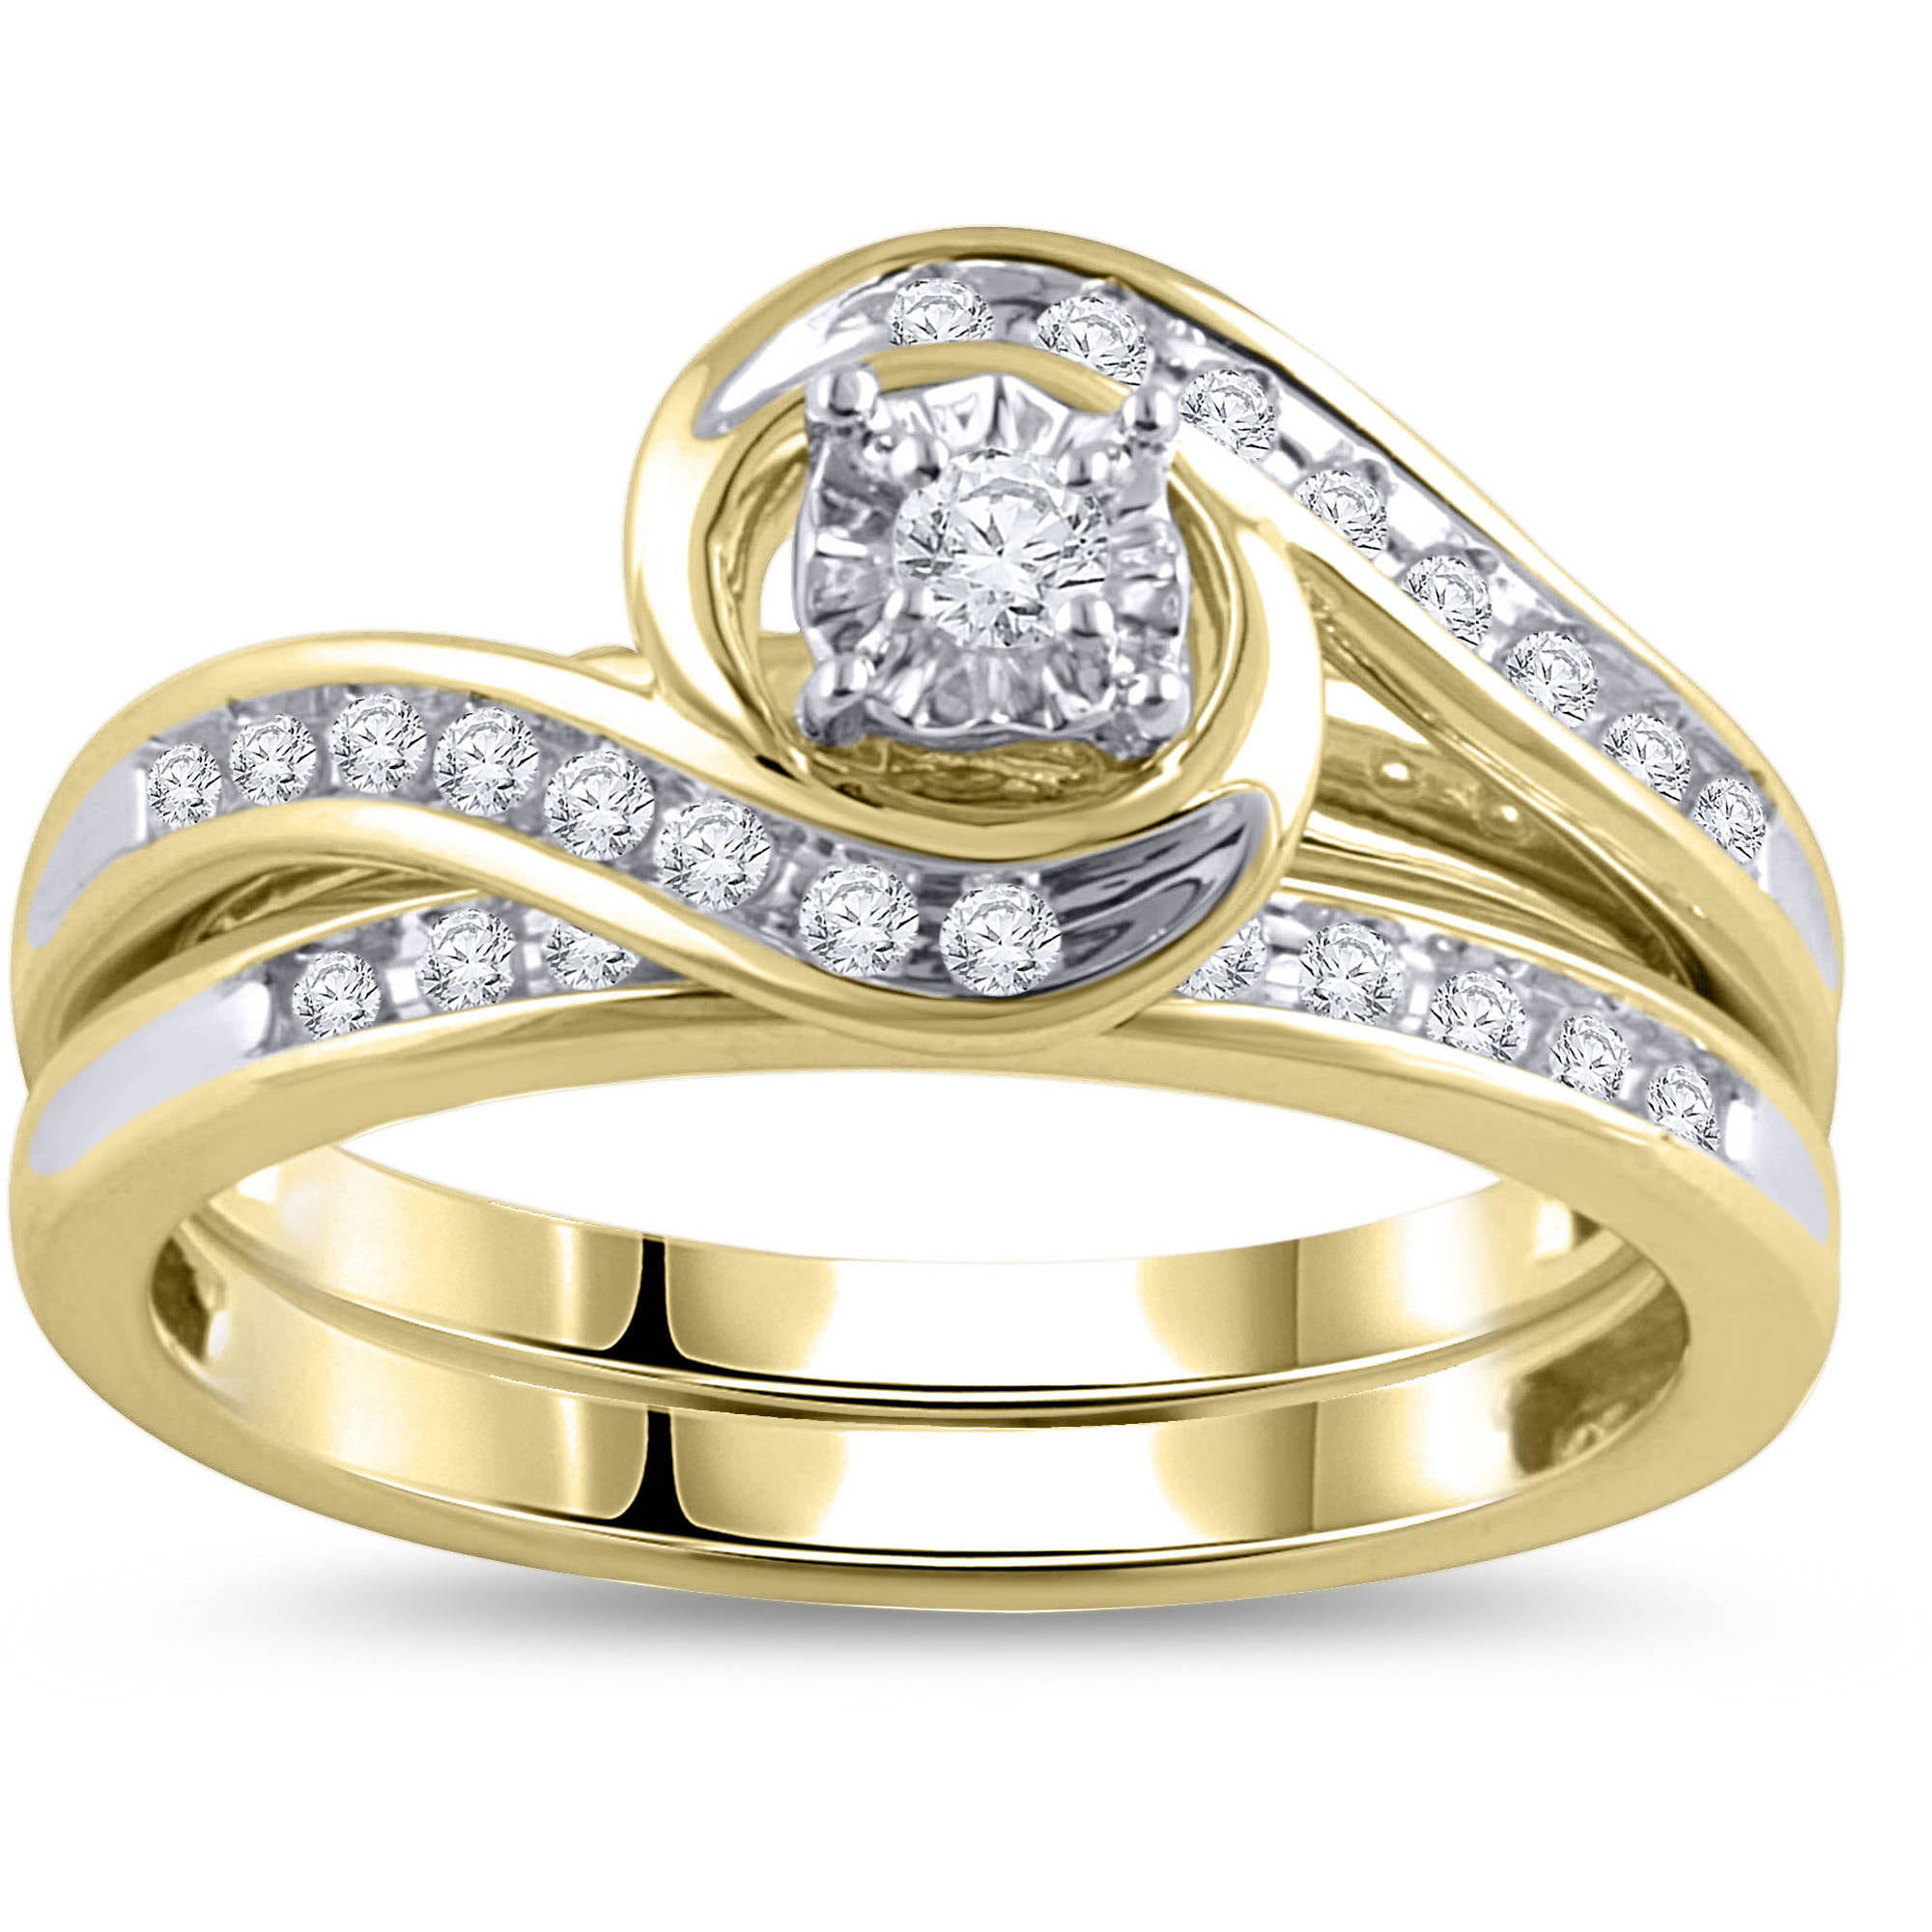 1 3 Carat Diamond Yellow Gold Bypass Bridal Ring Set Walmart